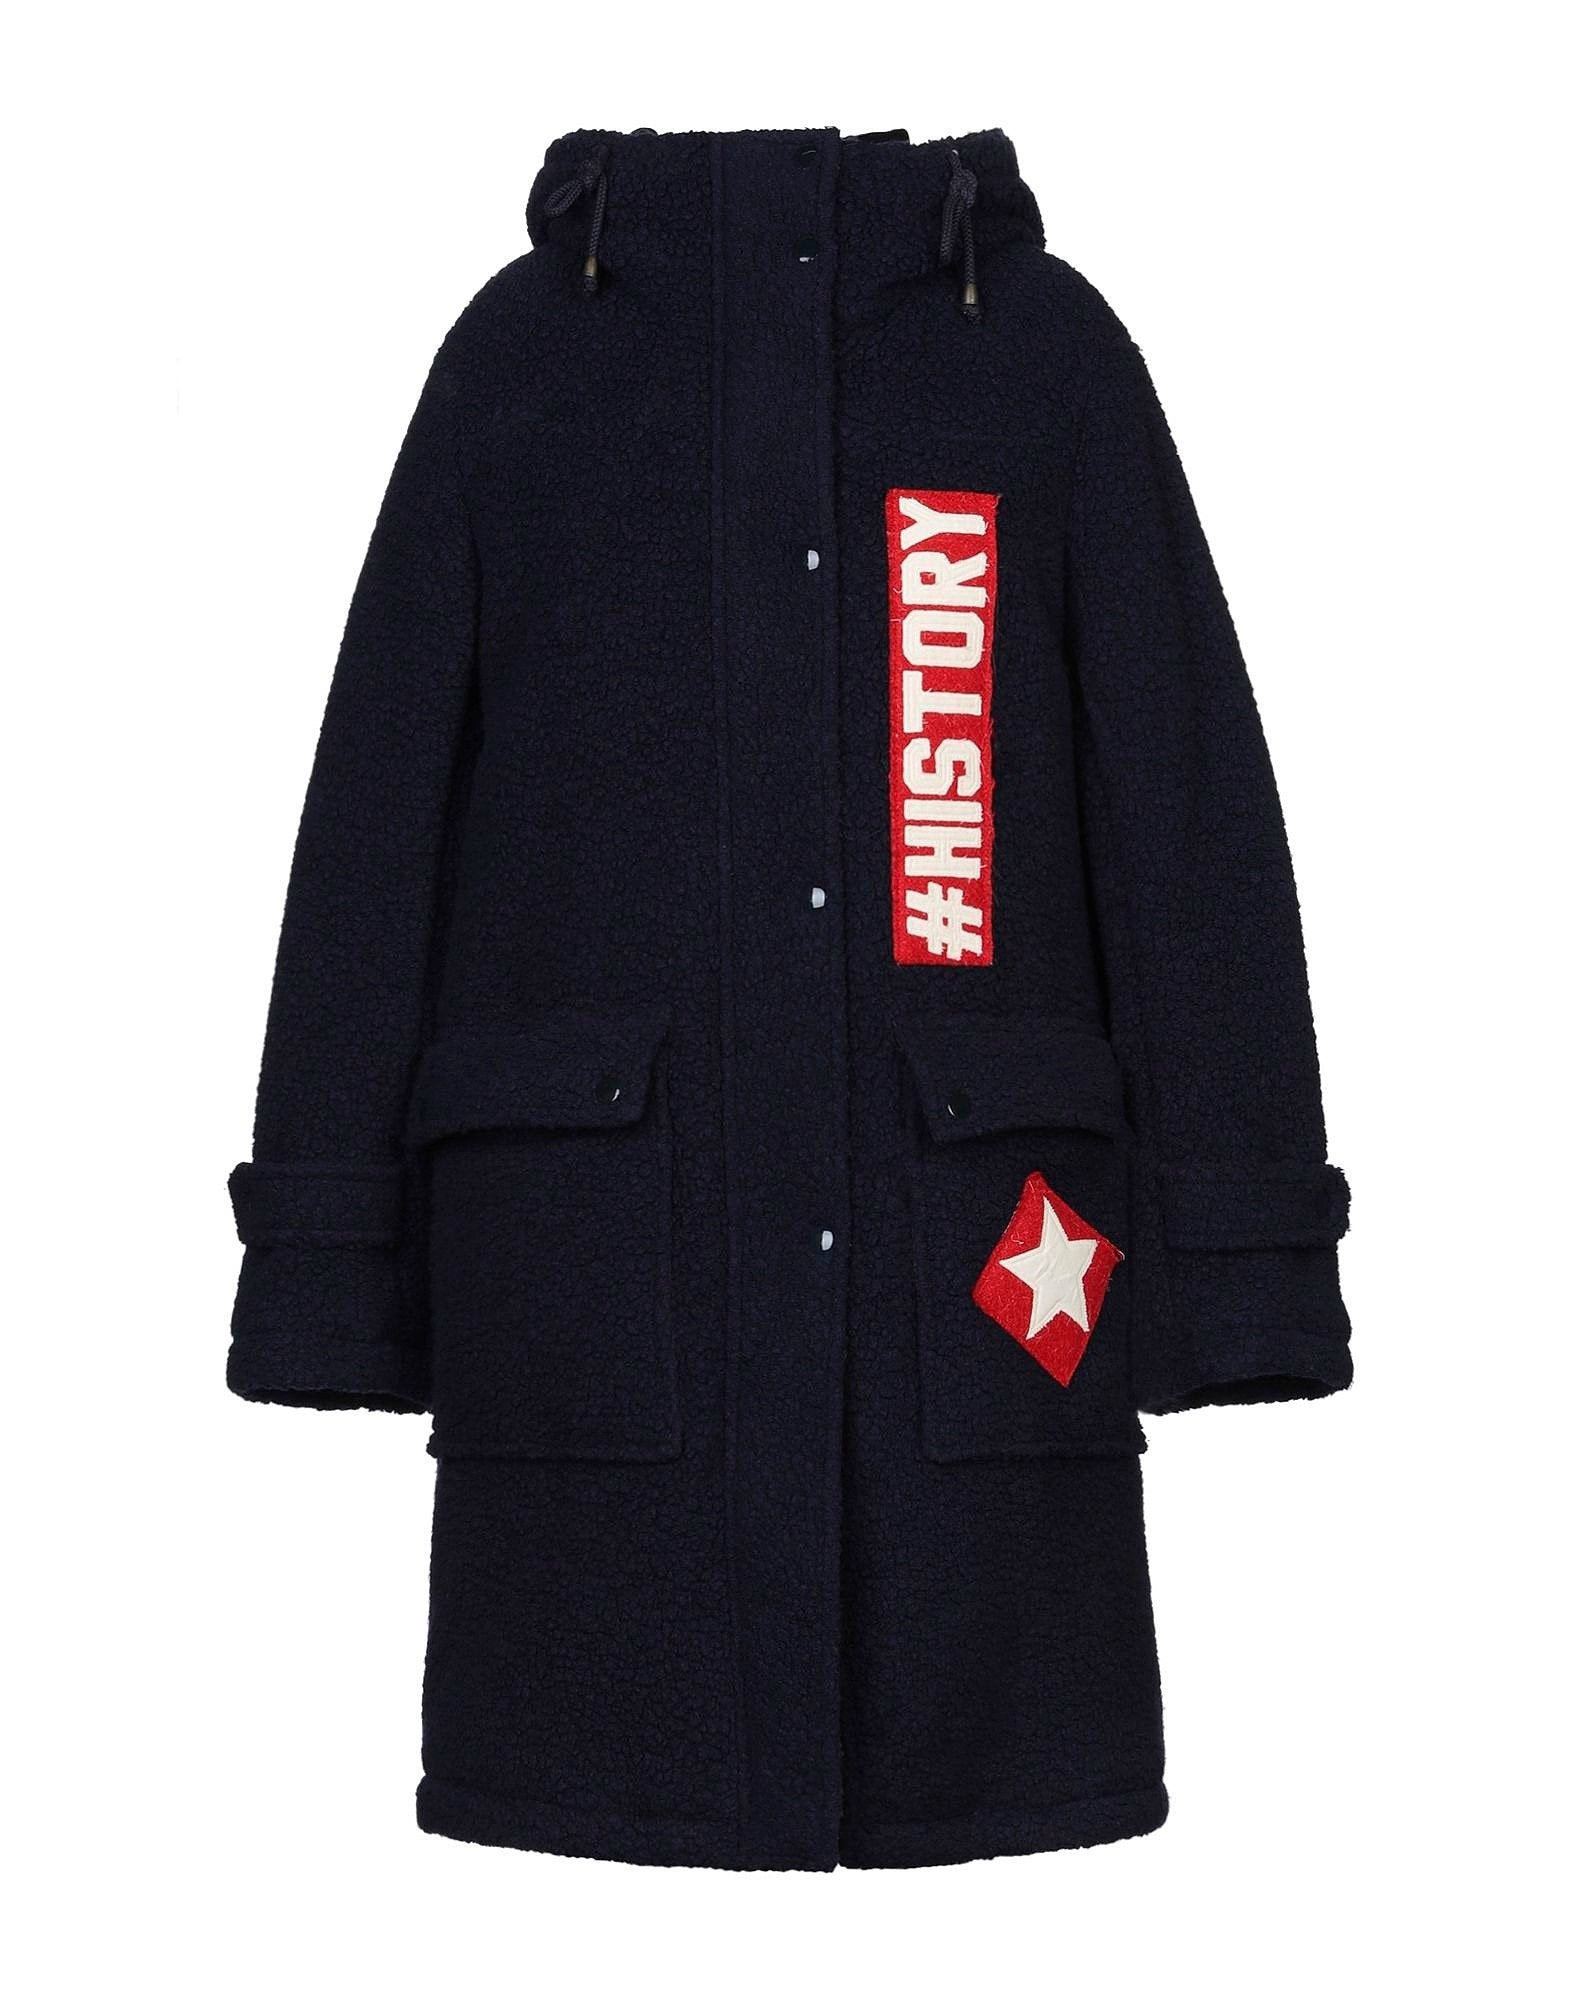 Parka Patch Coat - The Bobby Boga